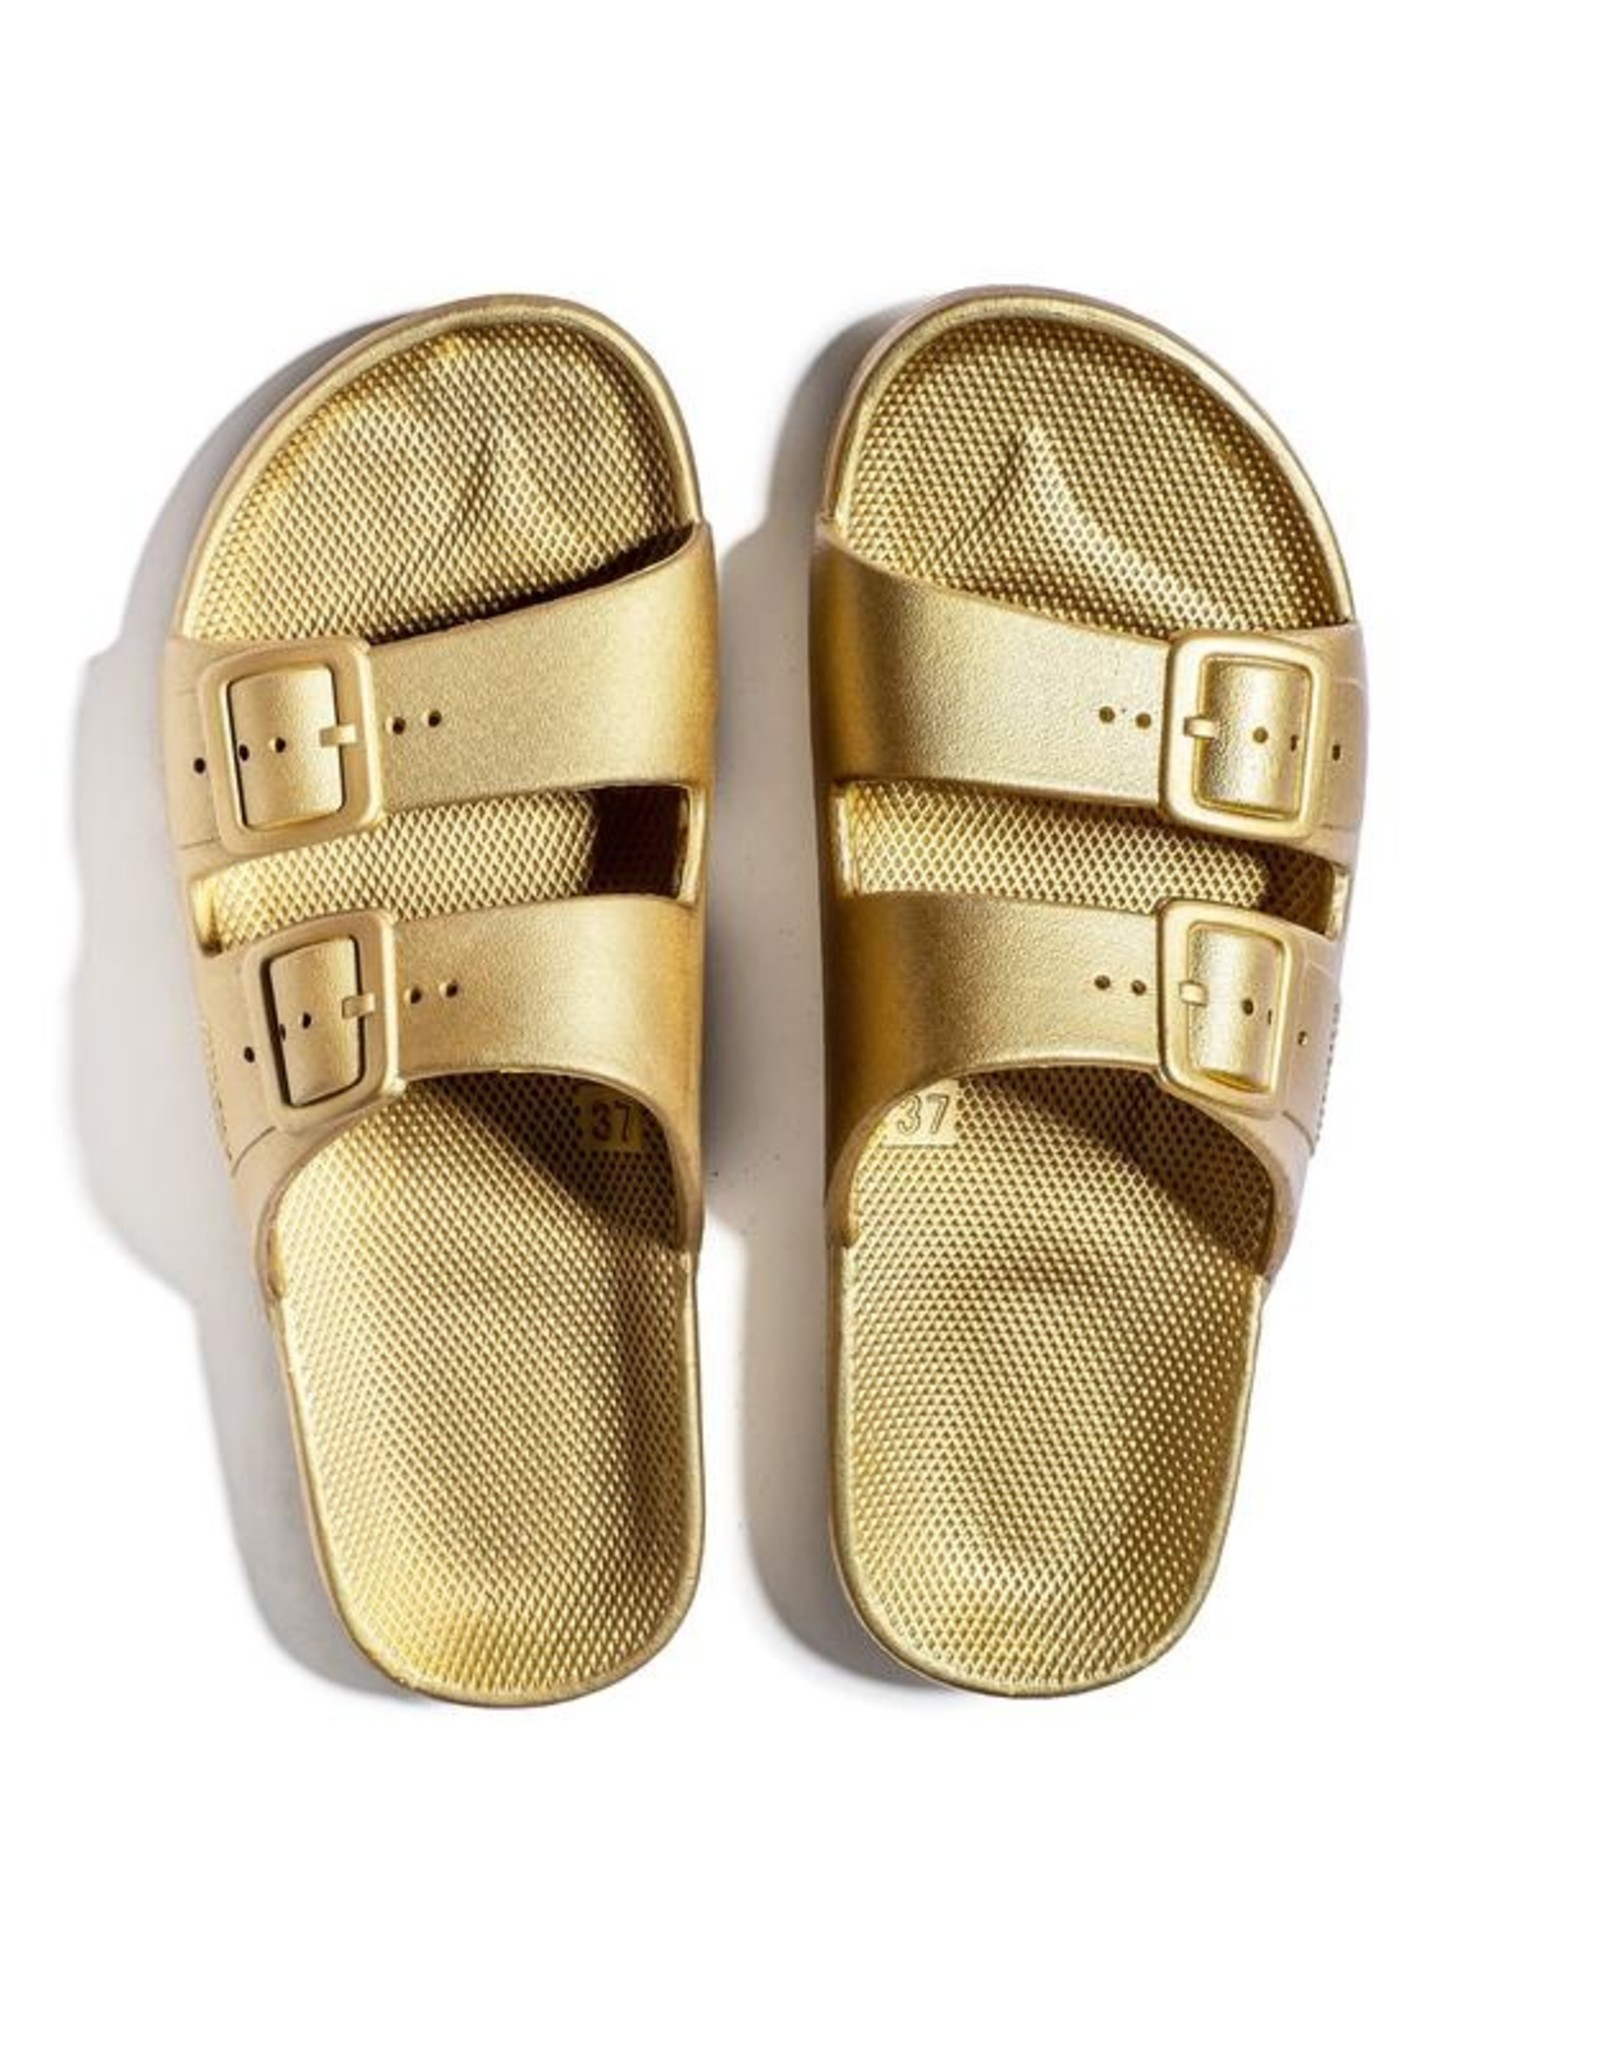 Freedom Moses Sandals GOLDIE - size 36-37